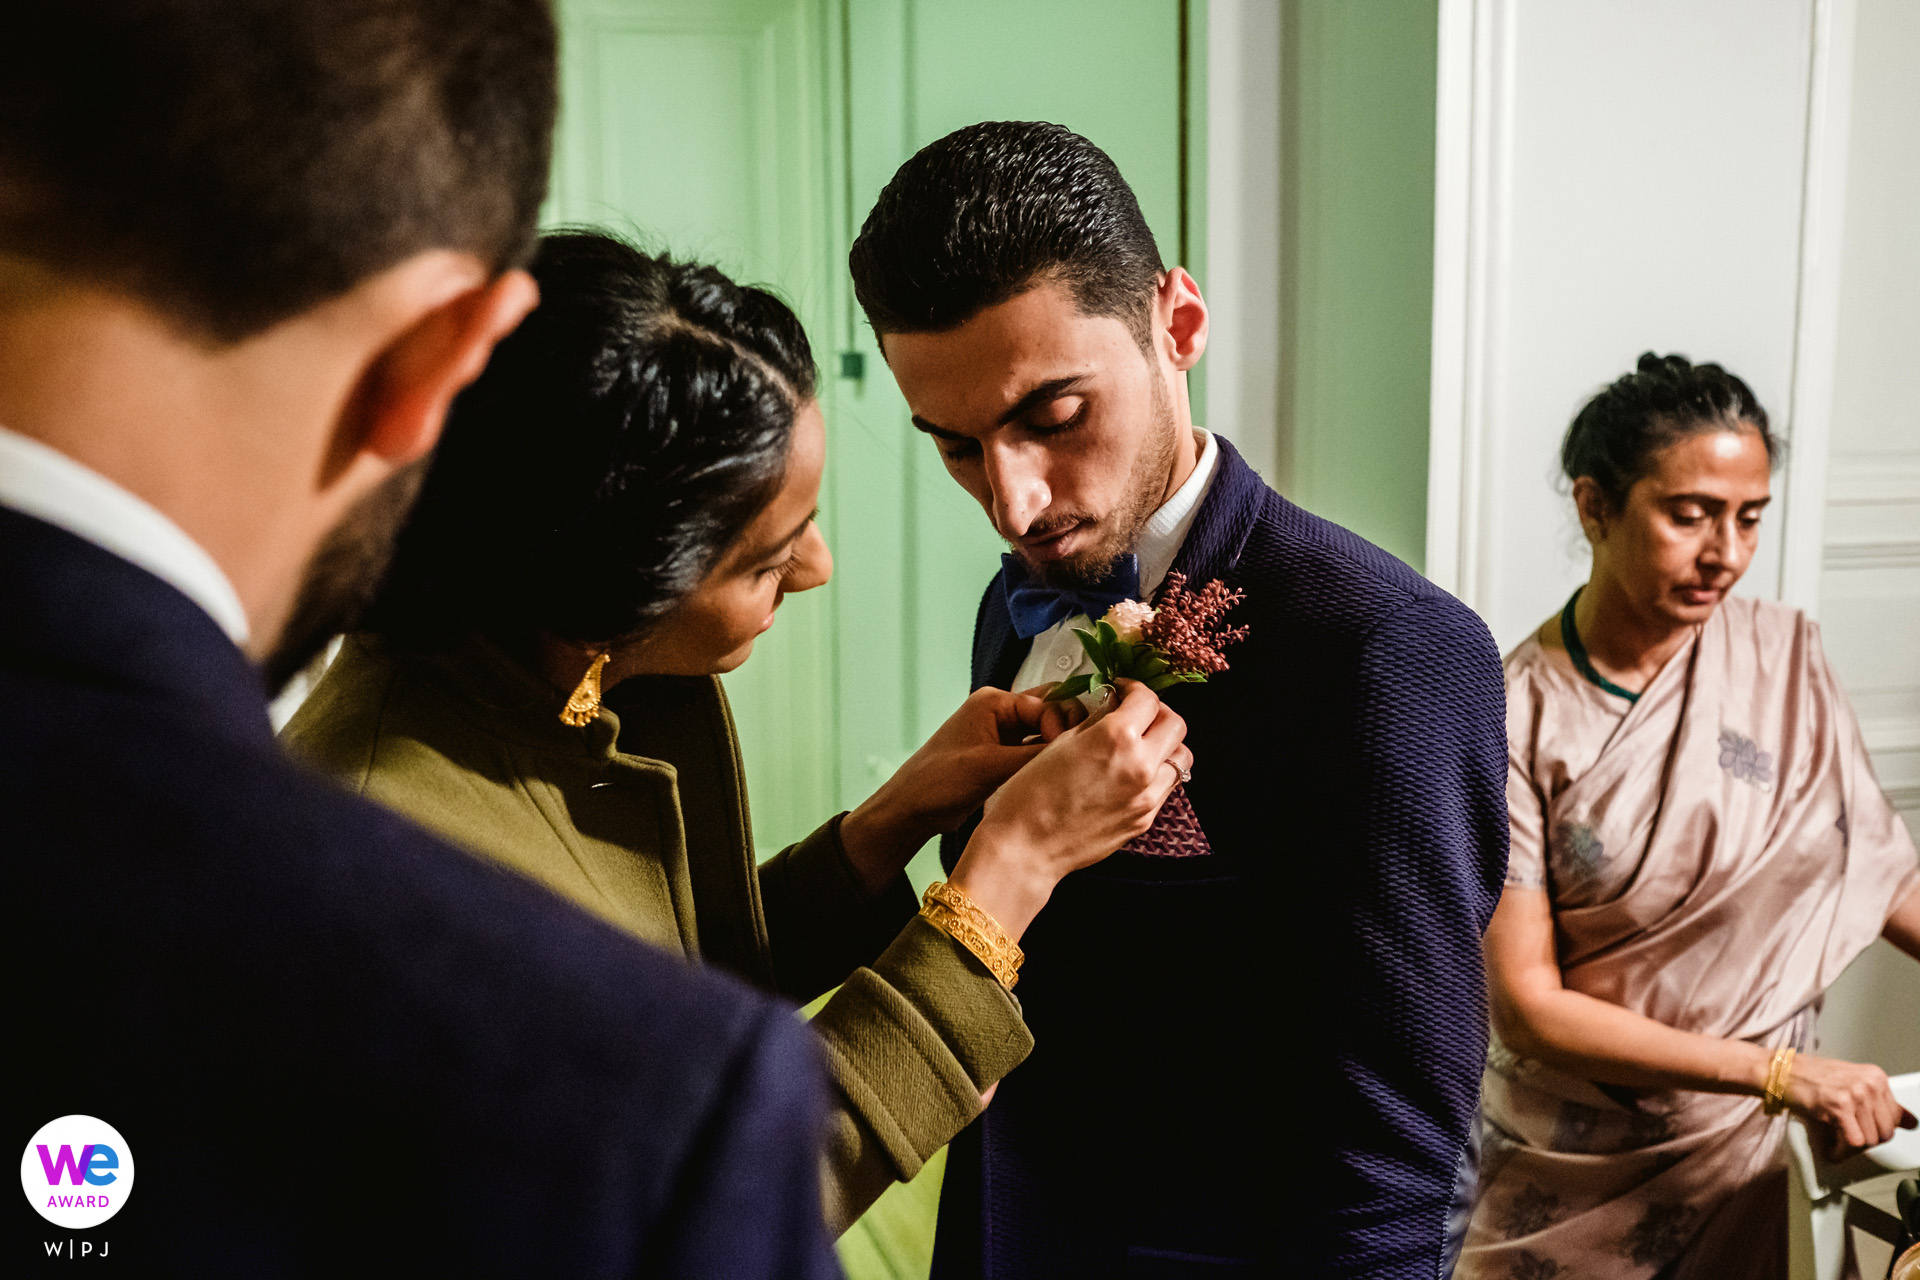 Cihangir, Istanbul, Turkey Elopement Photographer | the bride helps the groom prepare by fastening a boutonniere to his lapel as he watches